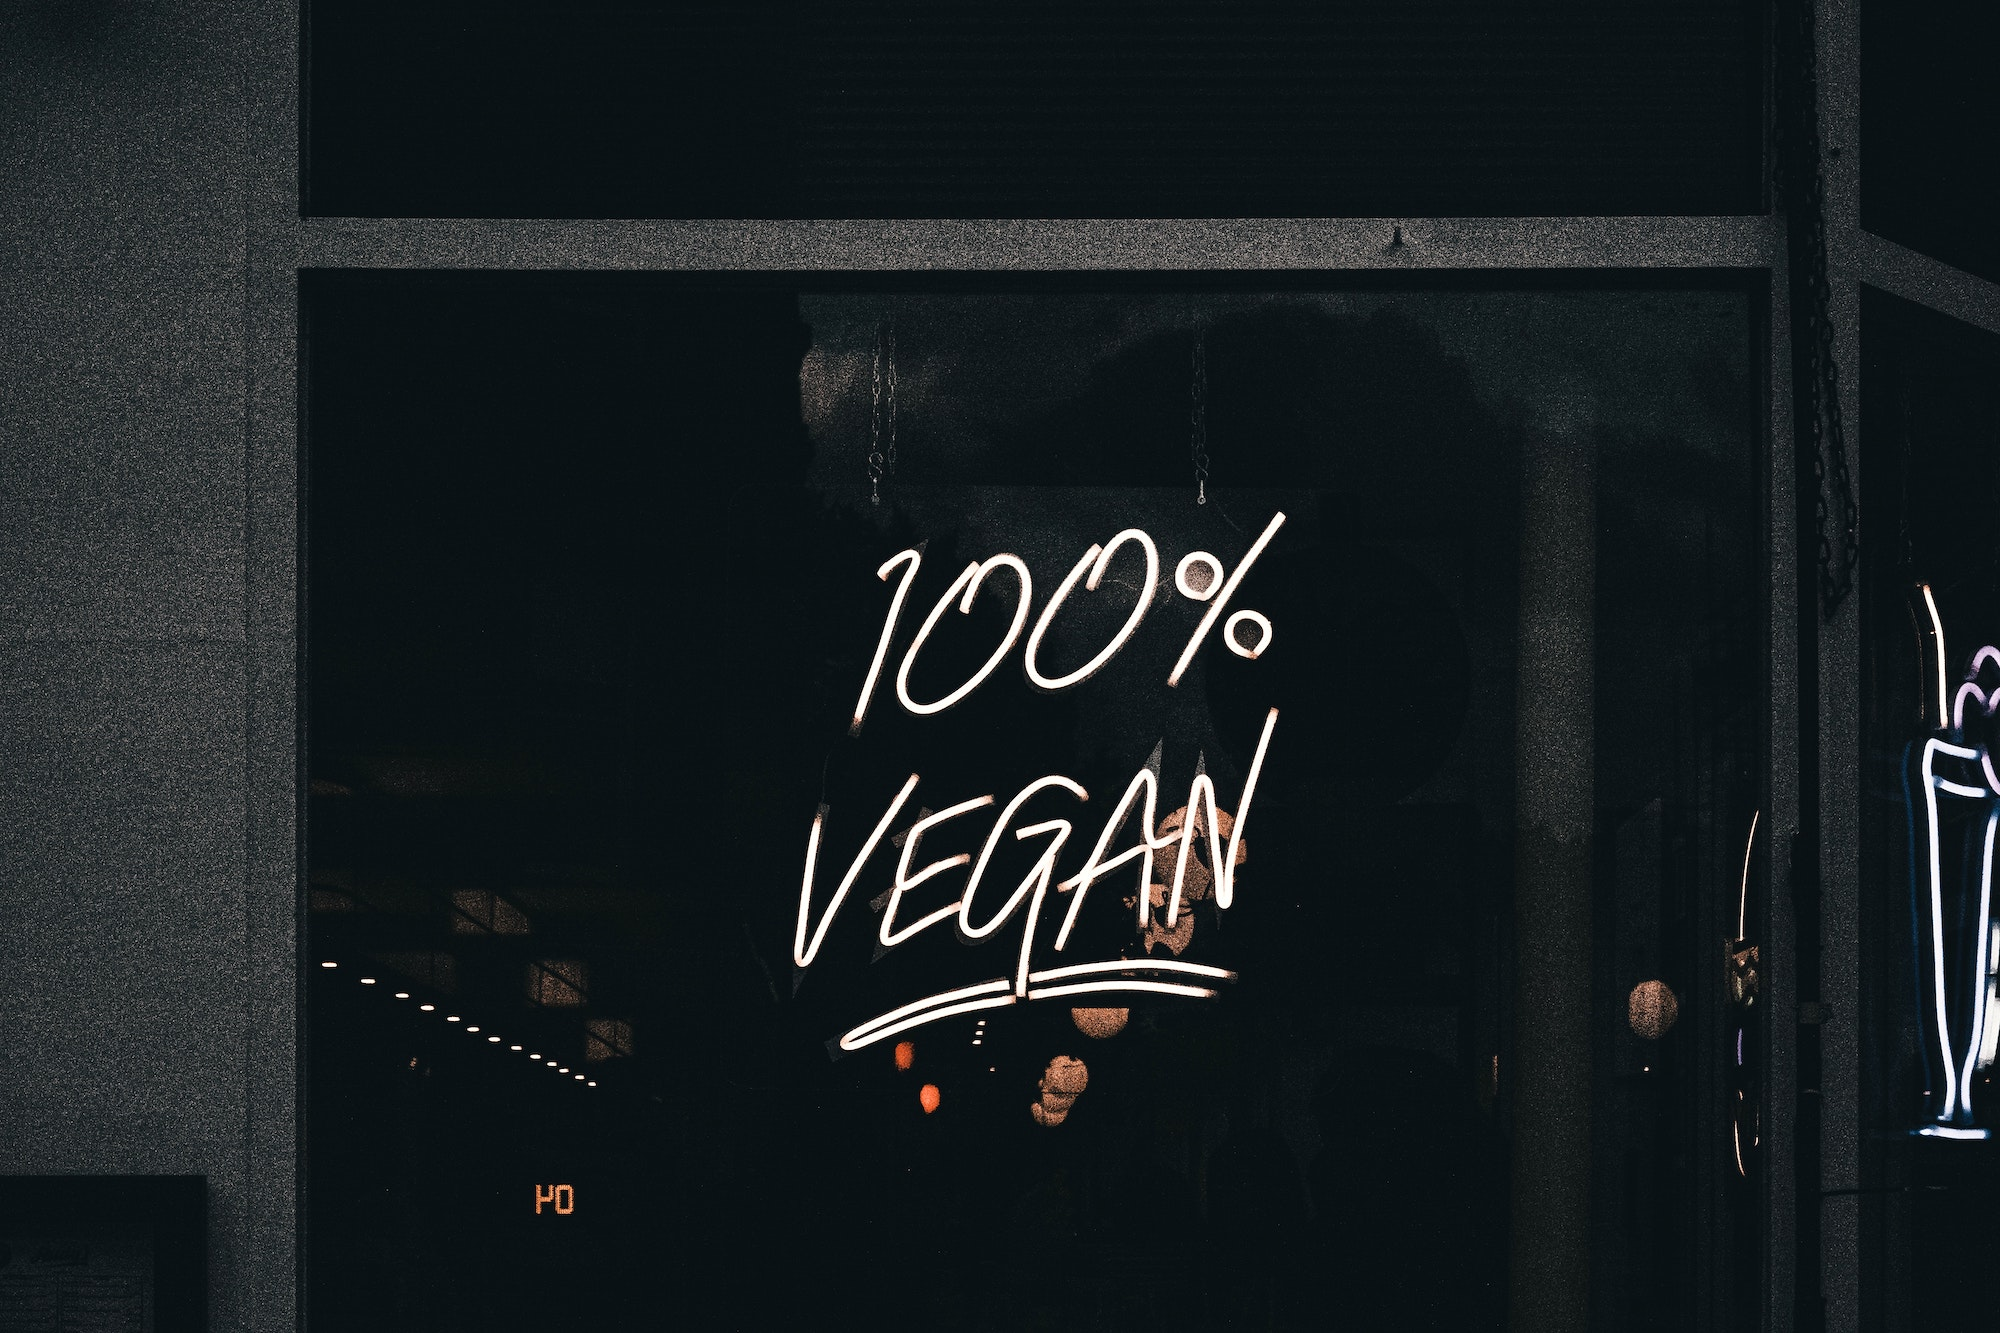 Veganism and plant-based cuisine are the future of food, as these seven signs prove